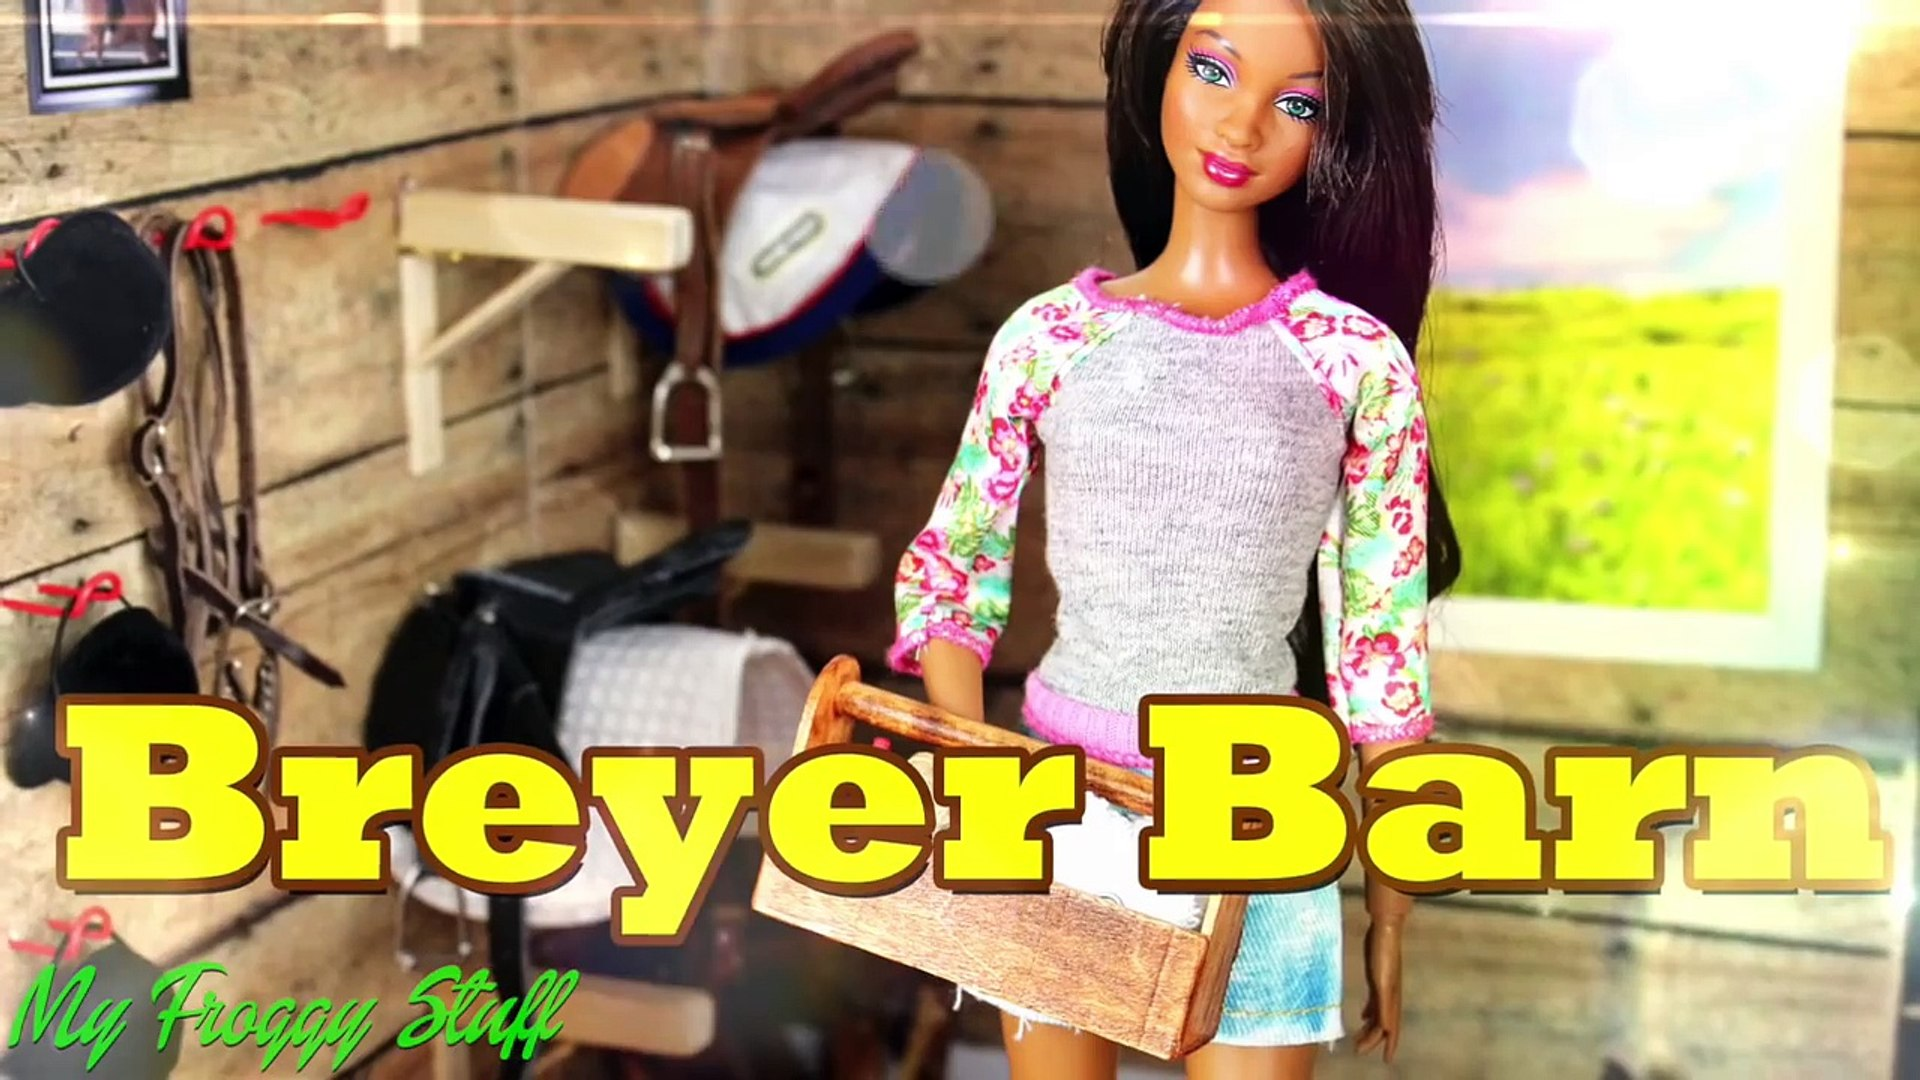 Diy How To Make Doll Breyer Horse Barn Tack And Feed Room Handmade Doll Crafts Video Dailymotion